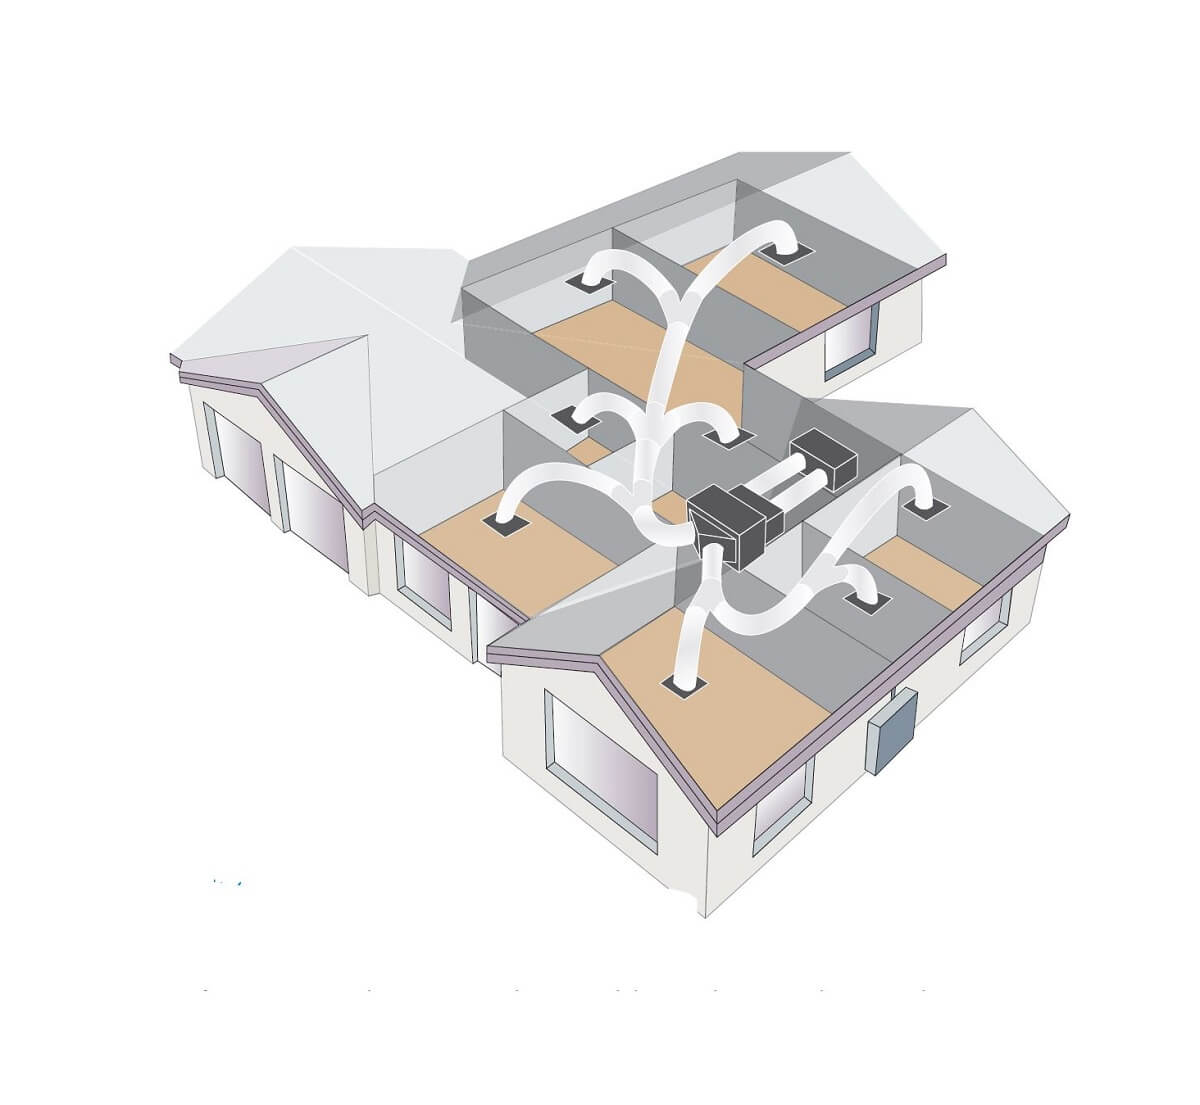 Roof space ducting diagram